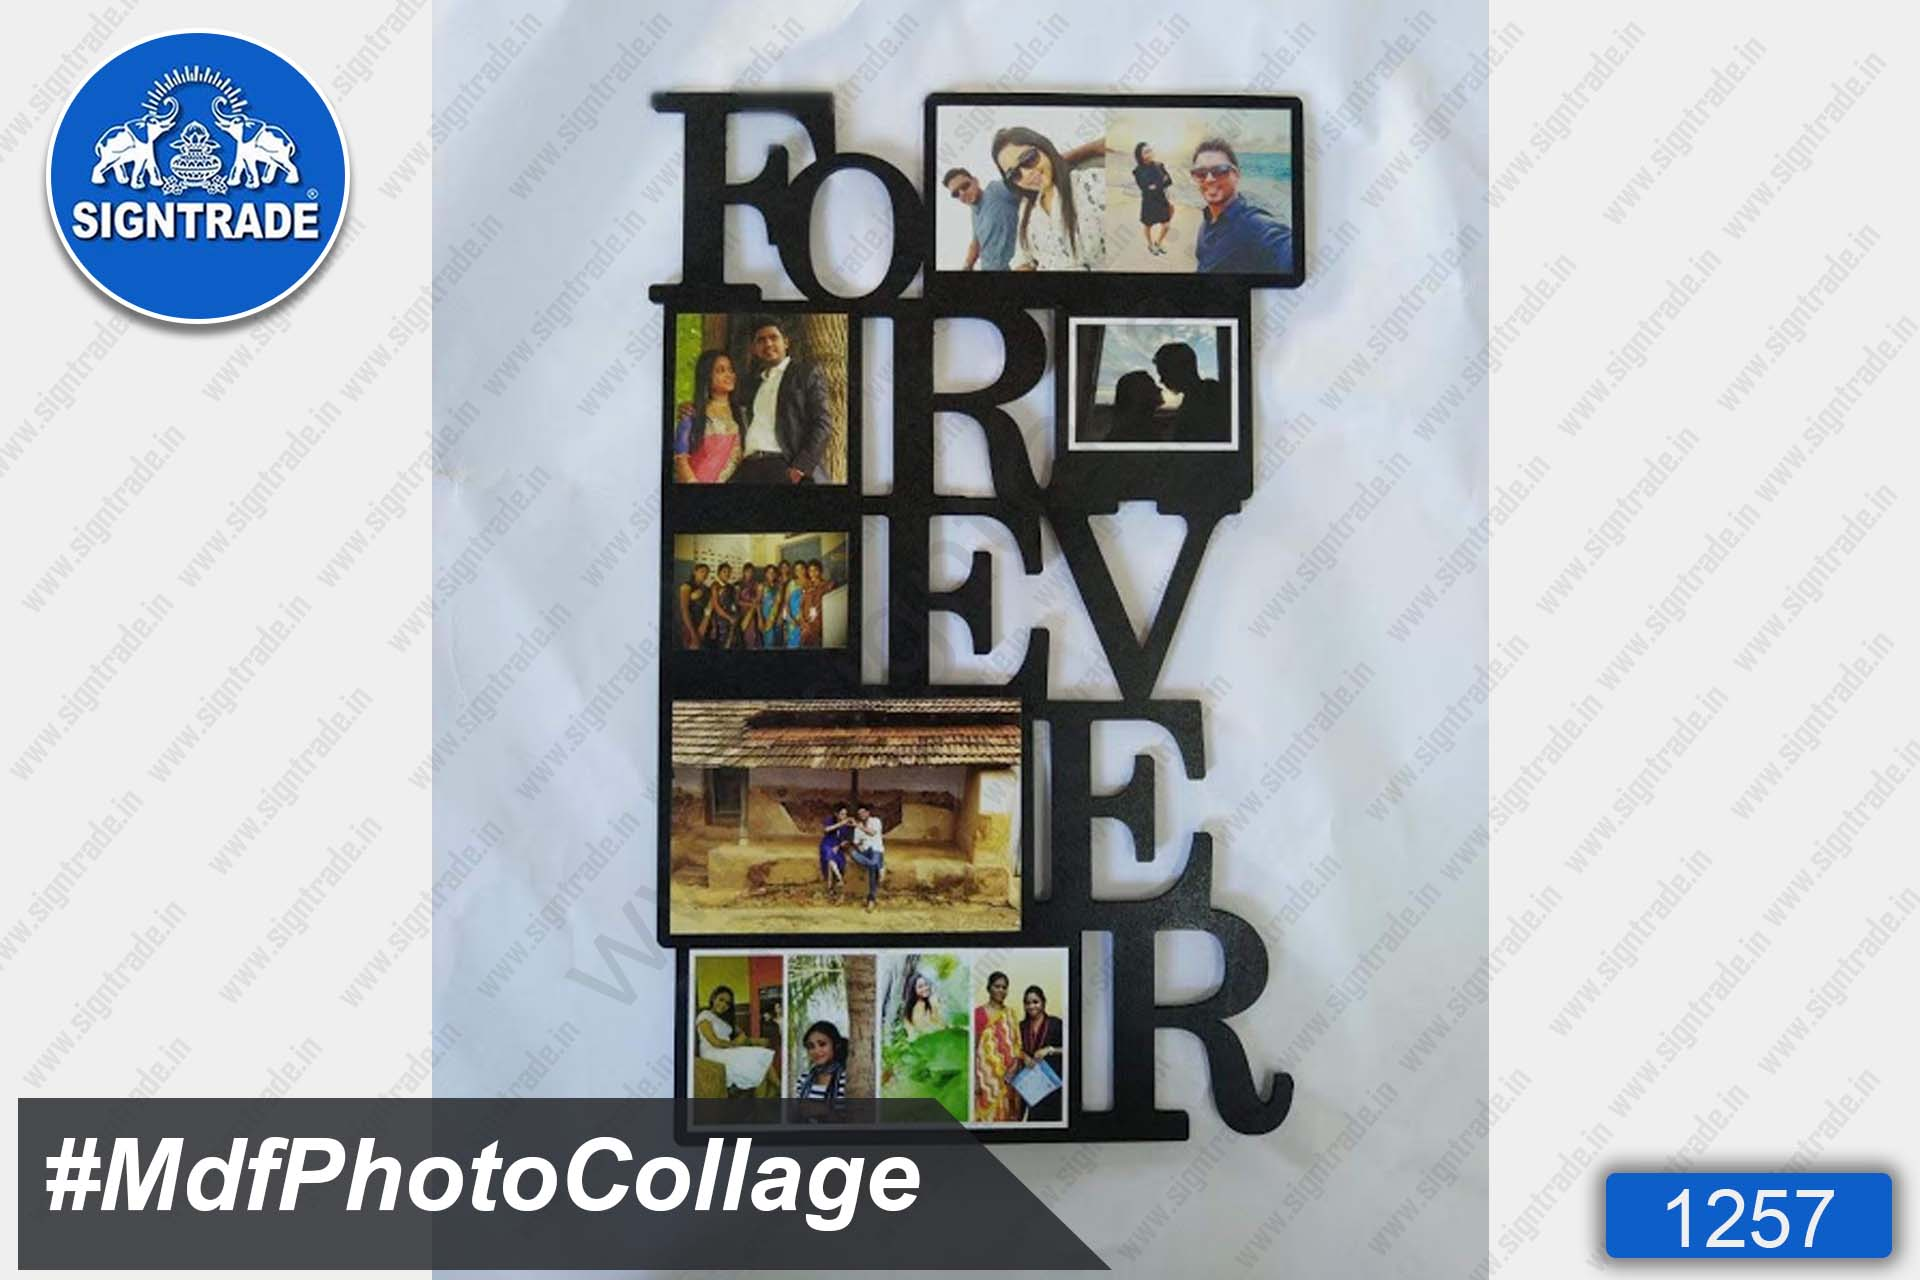 Forever MDF Photo Collage